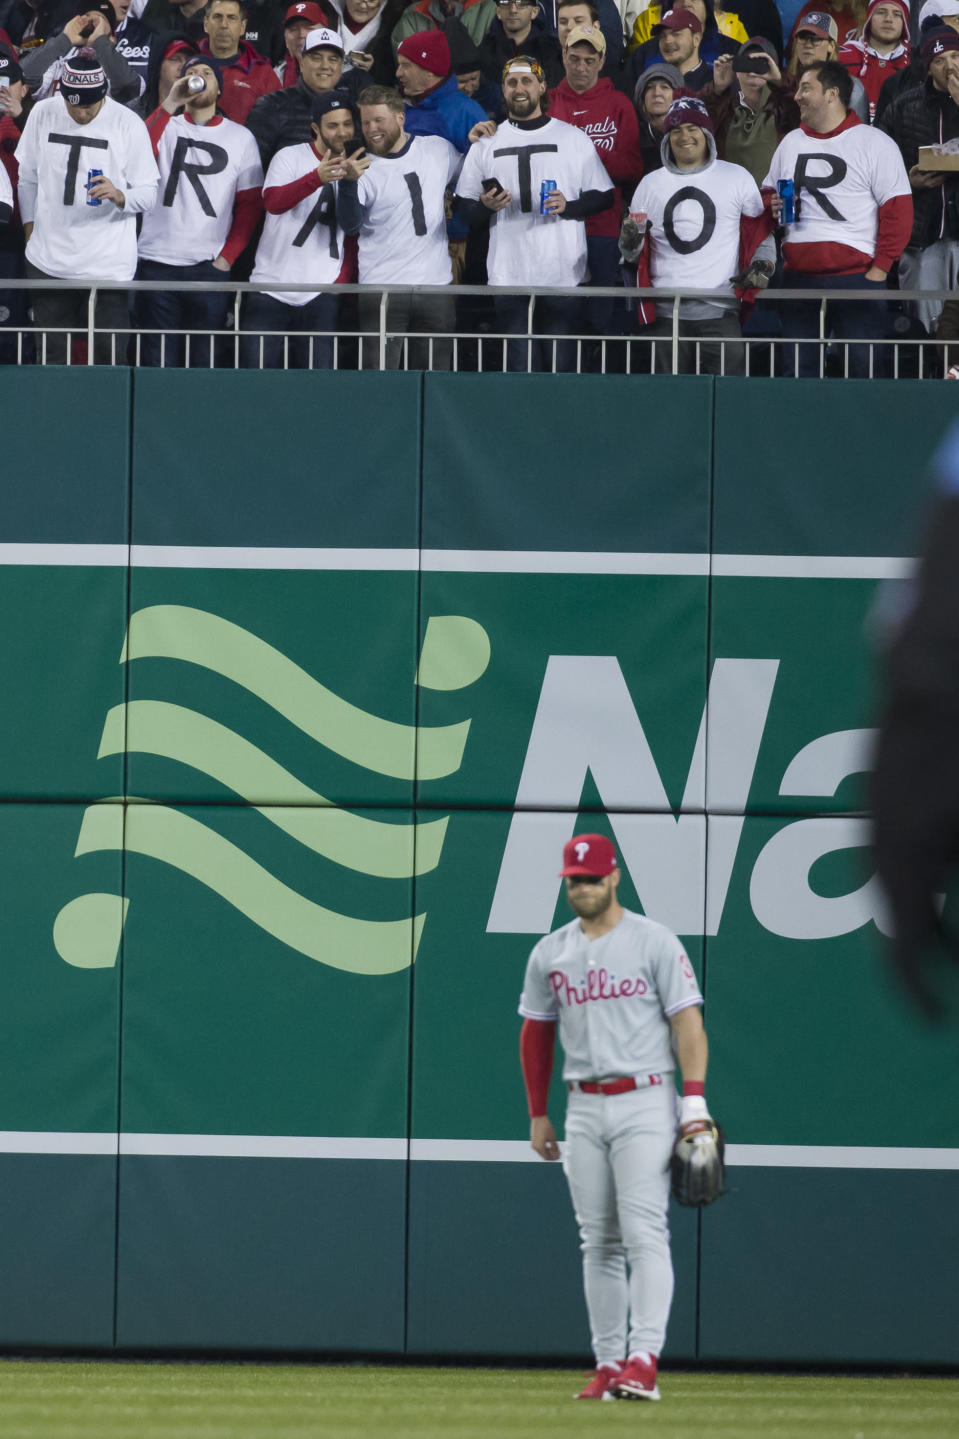 Fans let their feelings be known for Philadelphia Phillies right fielder Bryce Harper, bottom, in the first inning of a baseball game against the Washington Nationals at Nationals Park, Tuesday, April 2, 2019, in Washington. (AP Photo/Alex Brandon)